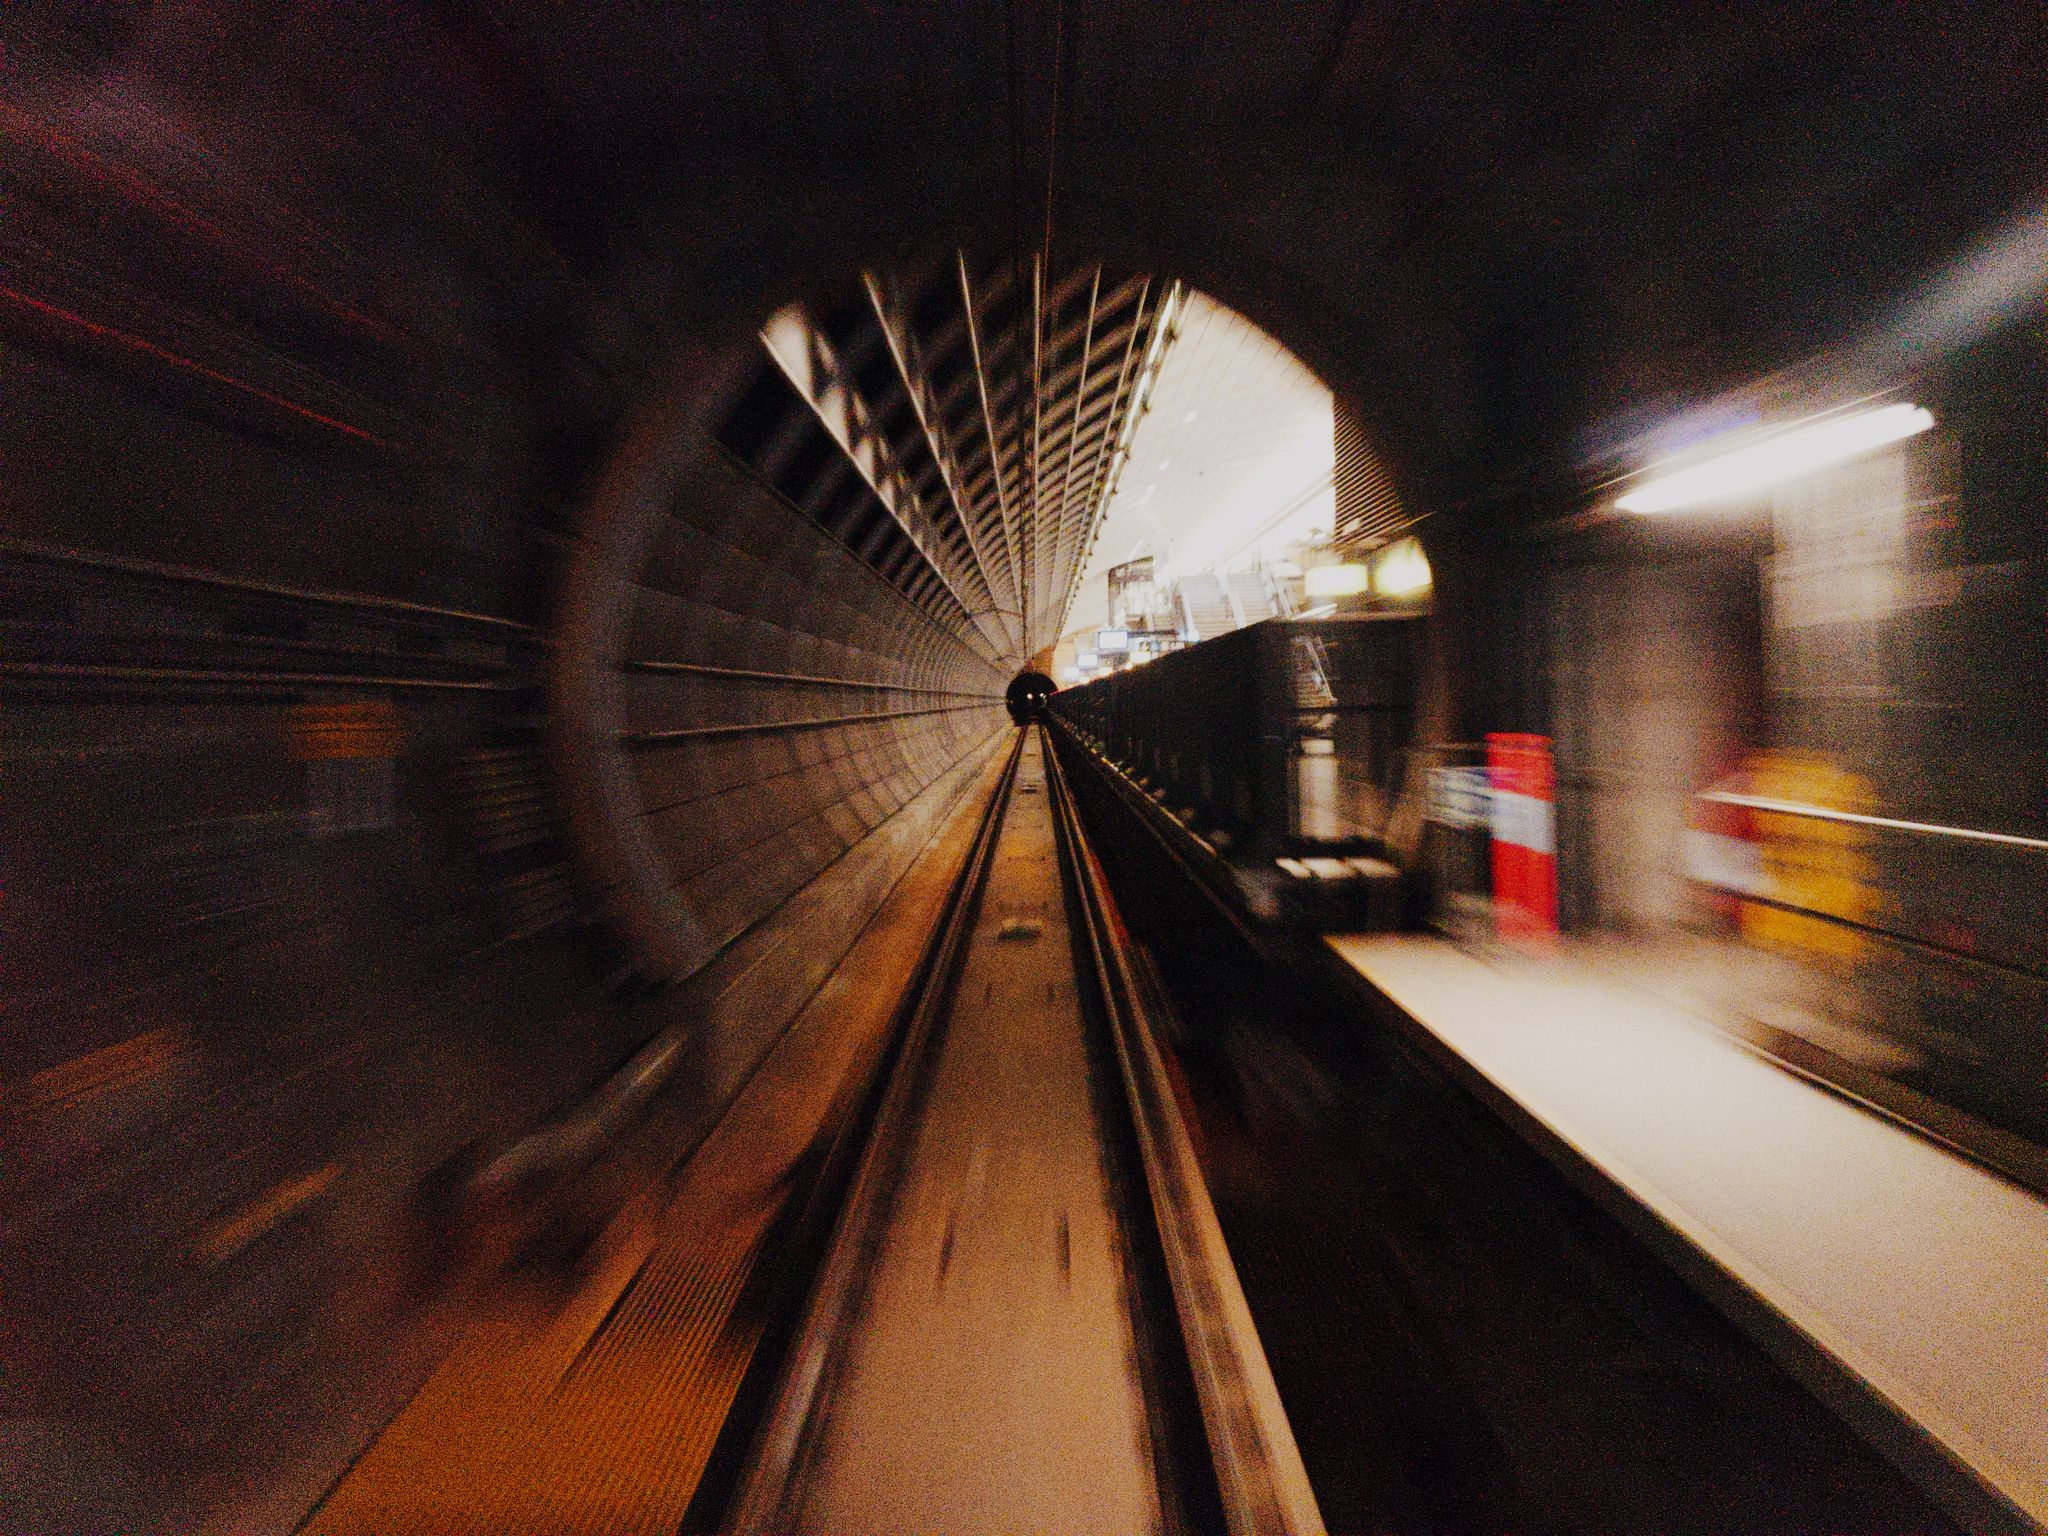 A motion-blurred view from the front of a train as it shoots through a round-profile tunnel. It's just about to emerge into a train station.